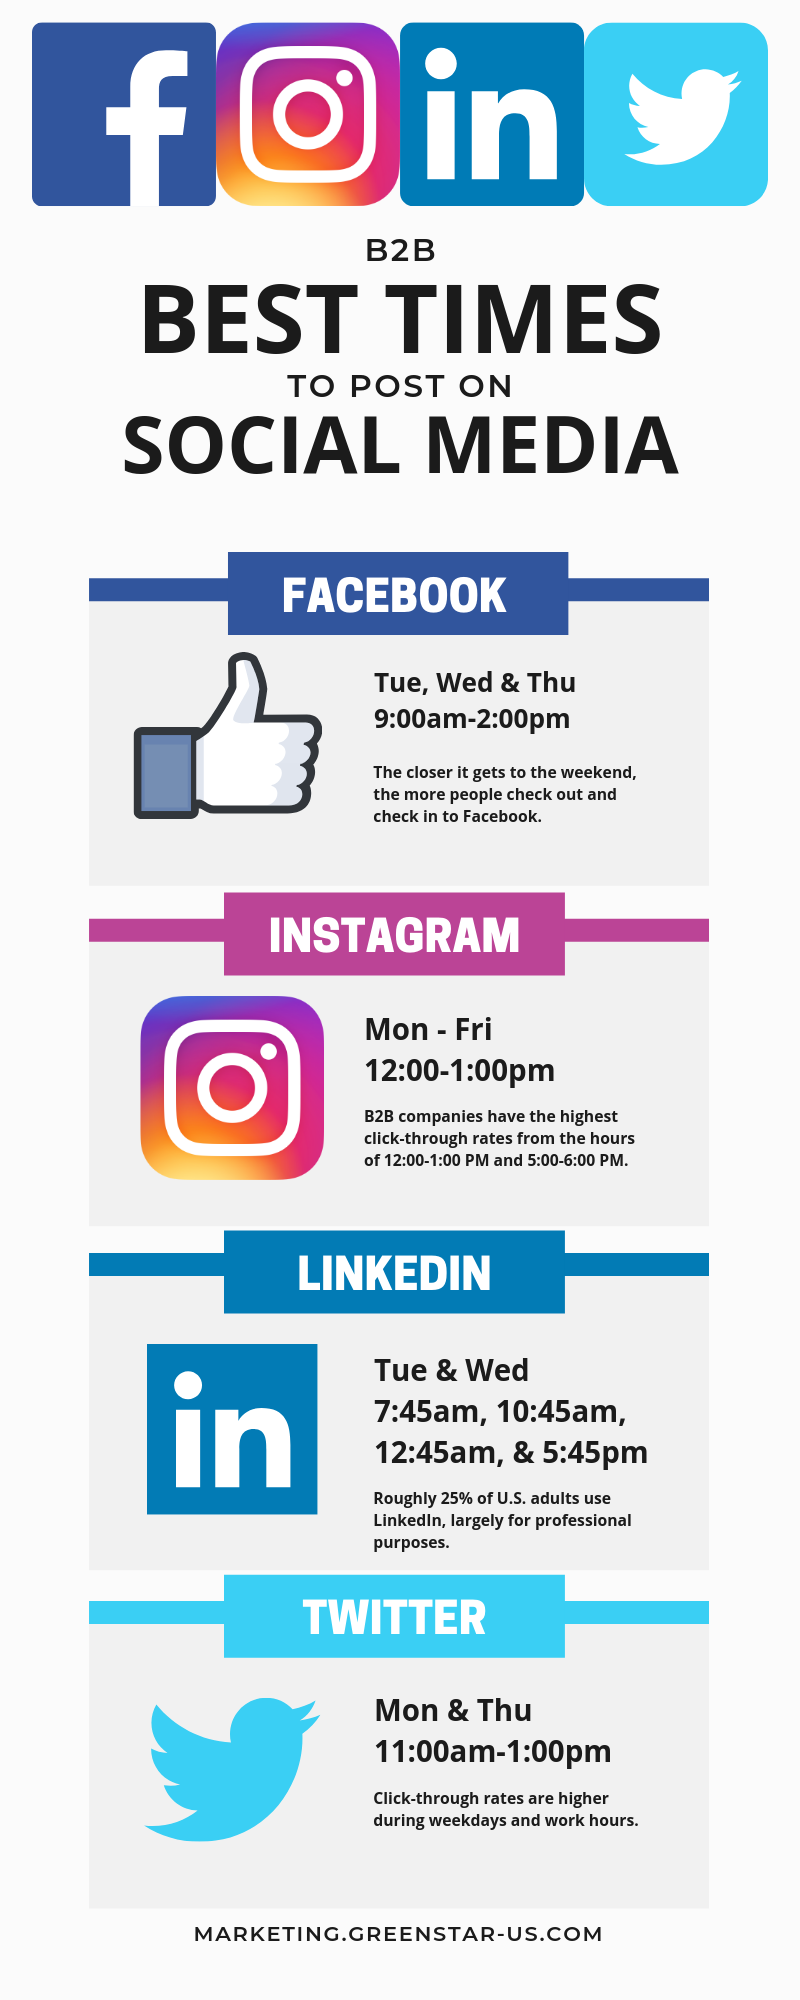 B2B best times to post on social media infographic